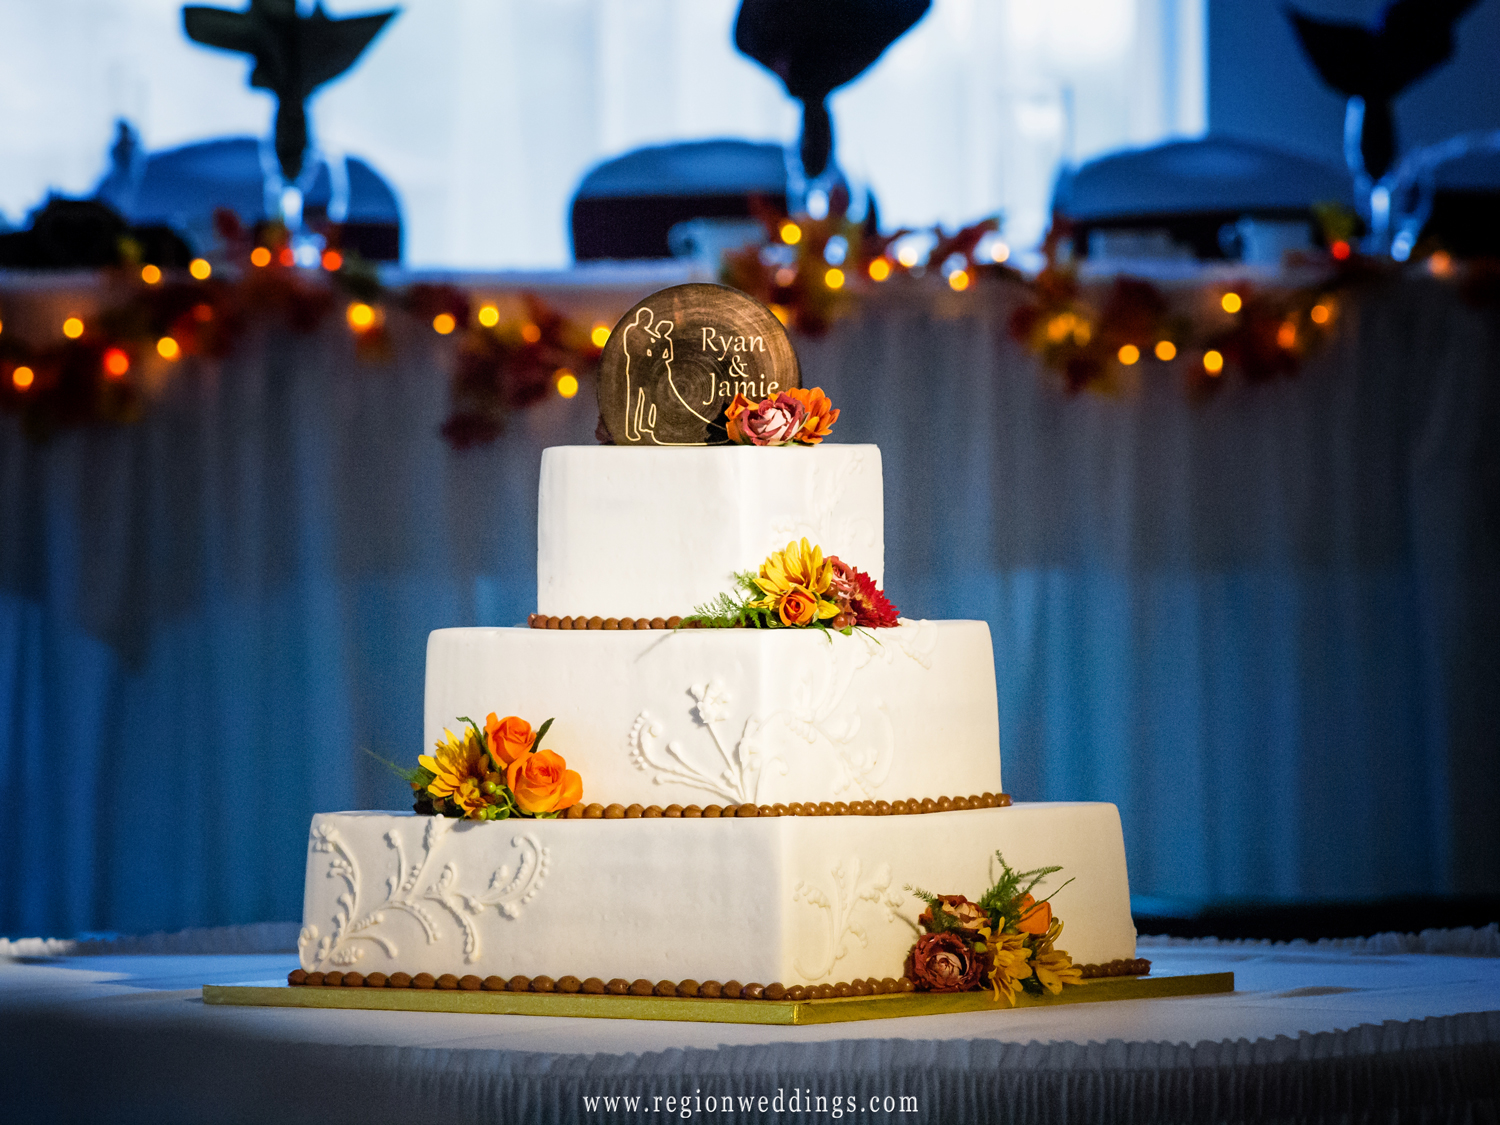 Wedding cake decorated with Autumn leaves and and Fall colors.